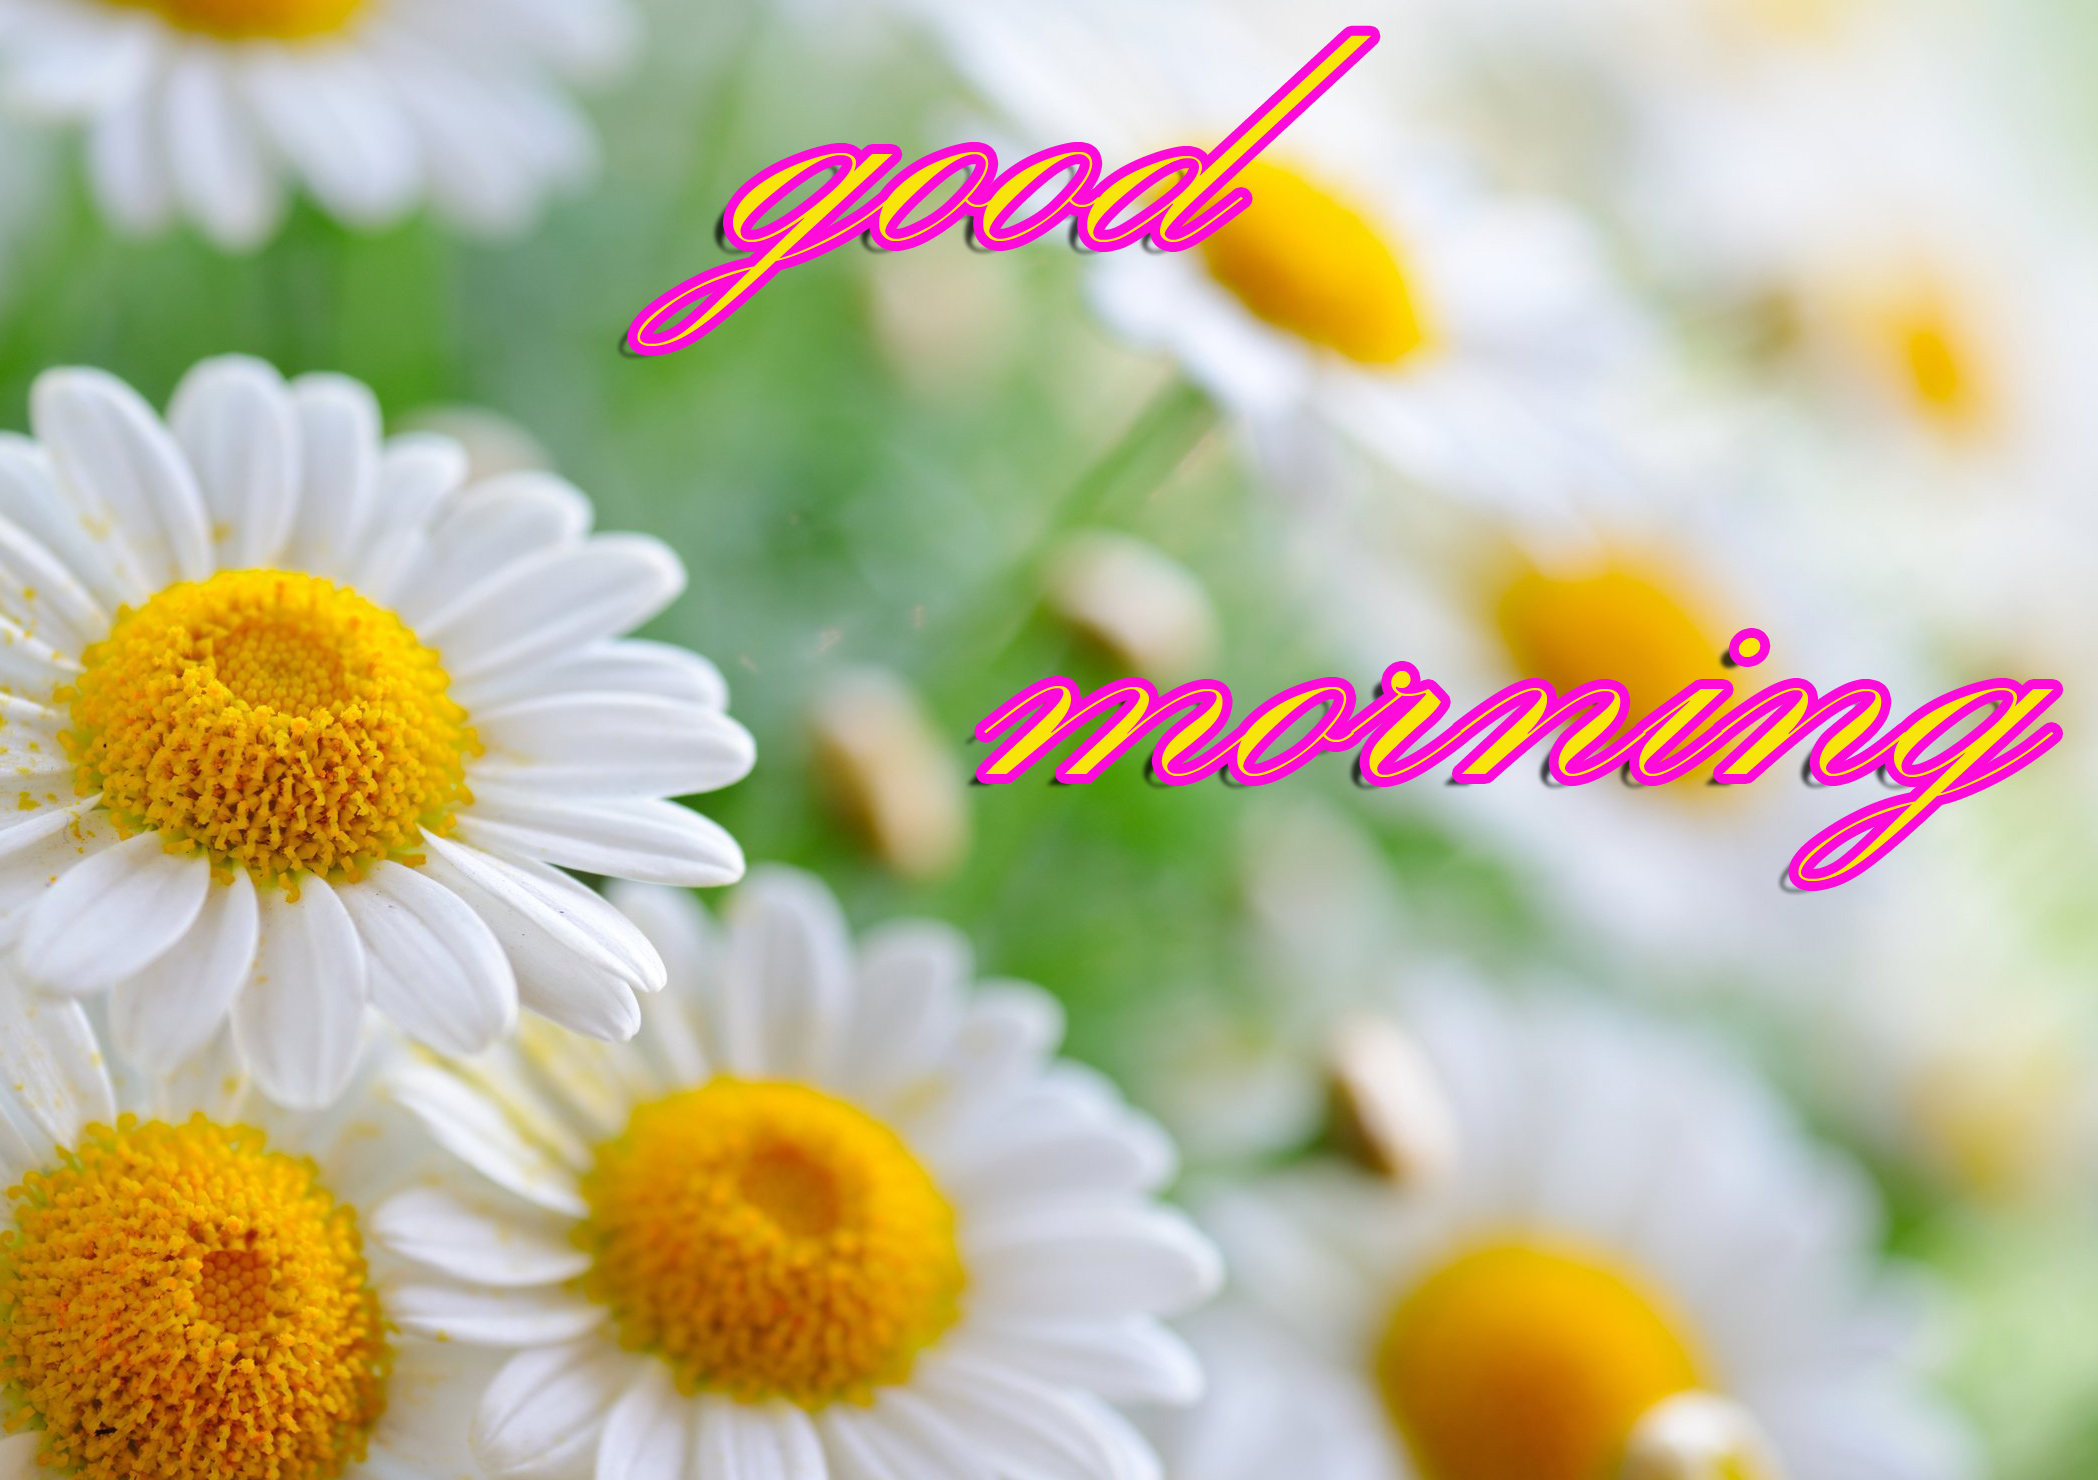 Good Morning Images Wallpaper Photo Pics Download With Flower In HD